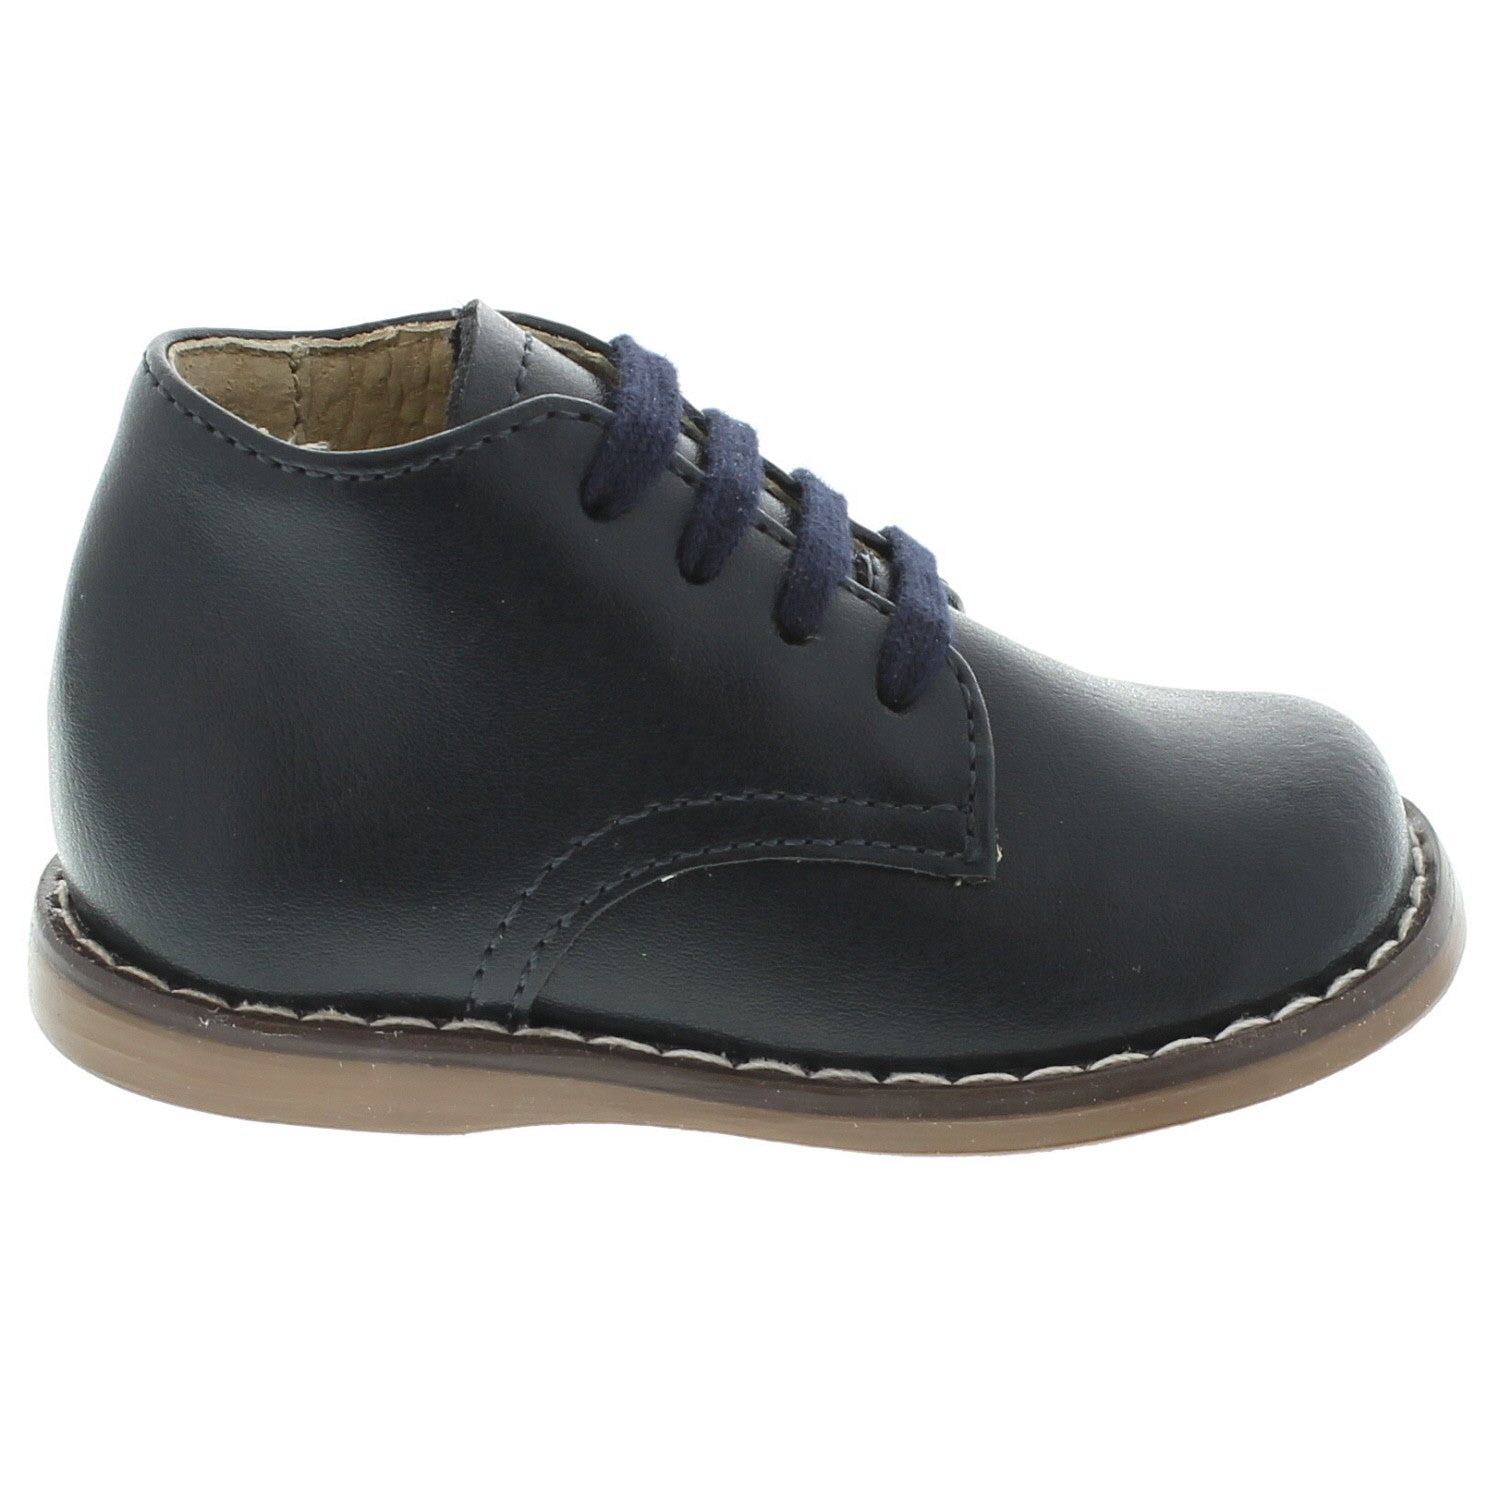 Todd - Navy by Footmates - Ponseti's Shoes